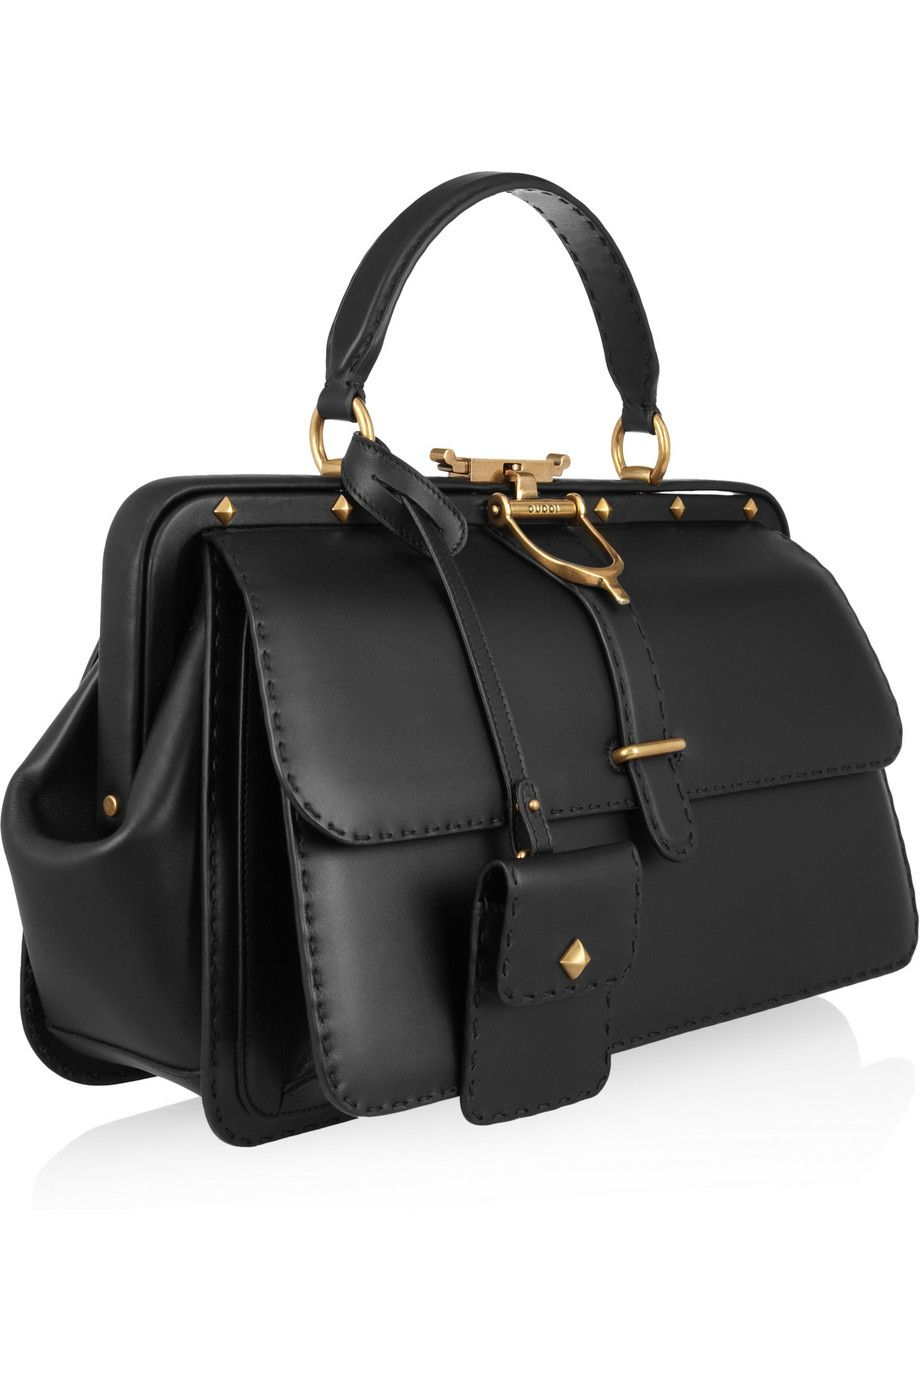 Gucci - Lady Stirrup studded leather doctor bag